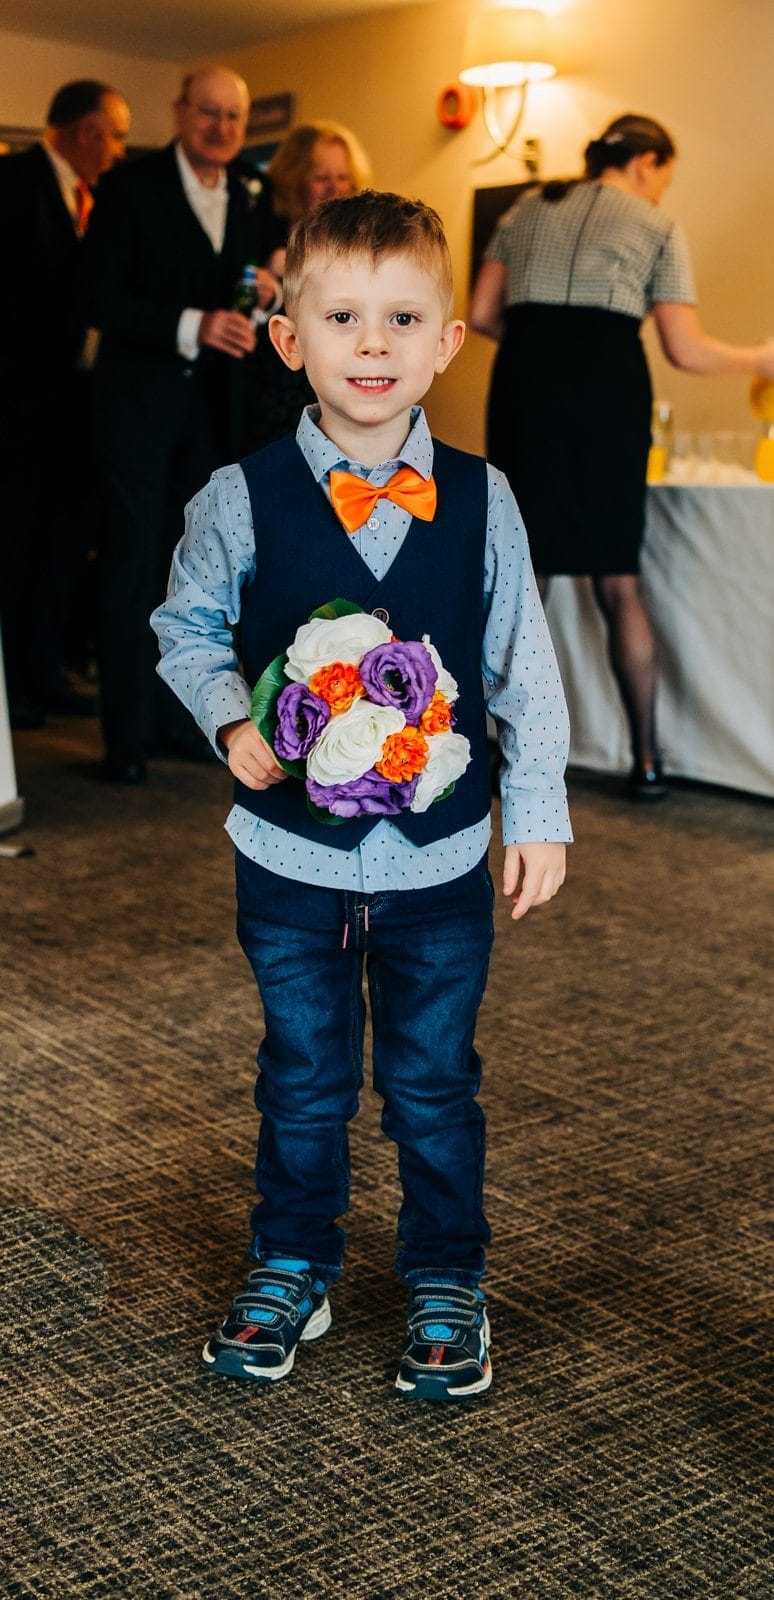 pageboy outfits, weddings in derbyshire, ripley weddings, derbyshire wedding photographer